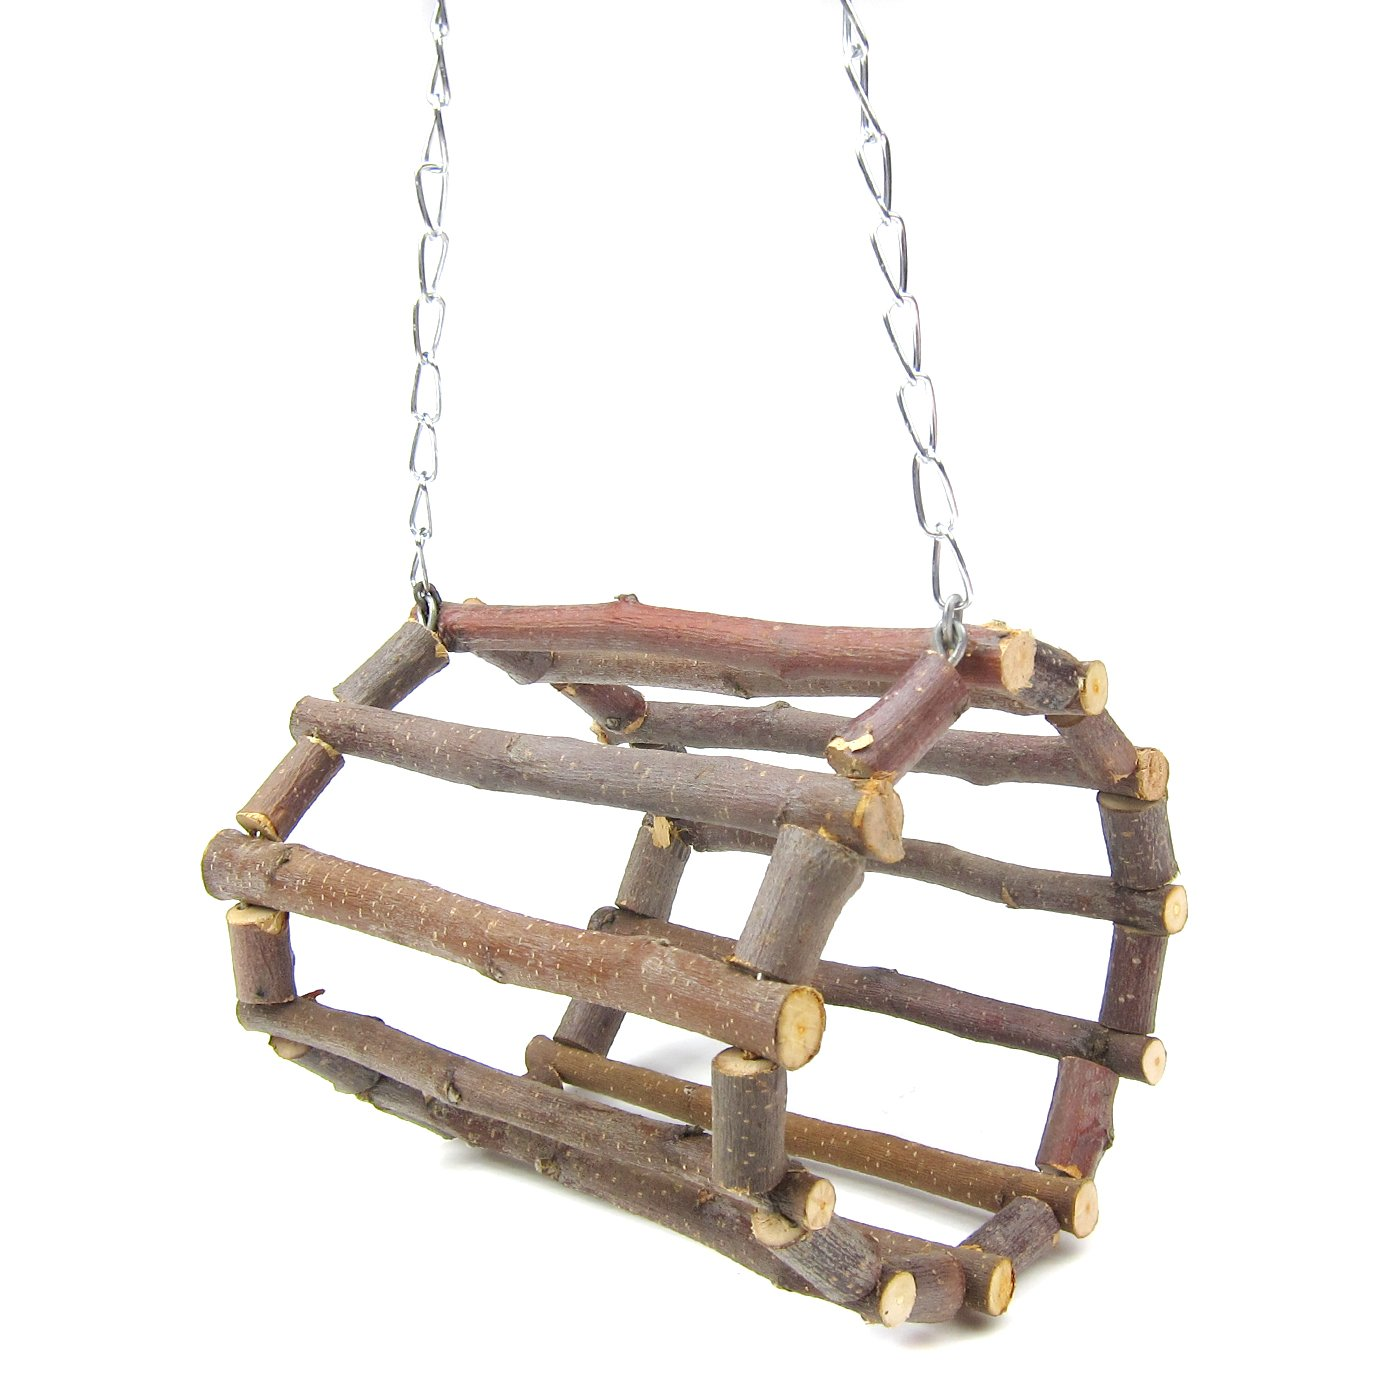 Alfie Pet by Petoga Couture - Lacey Wooden Swing Toy for Small Animals like Dwarf Hamster and Mouse